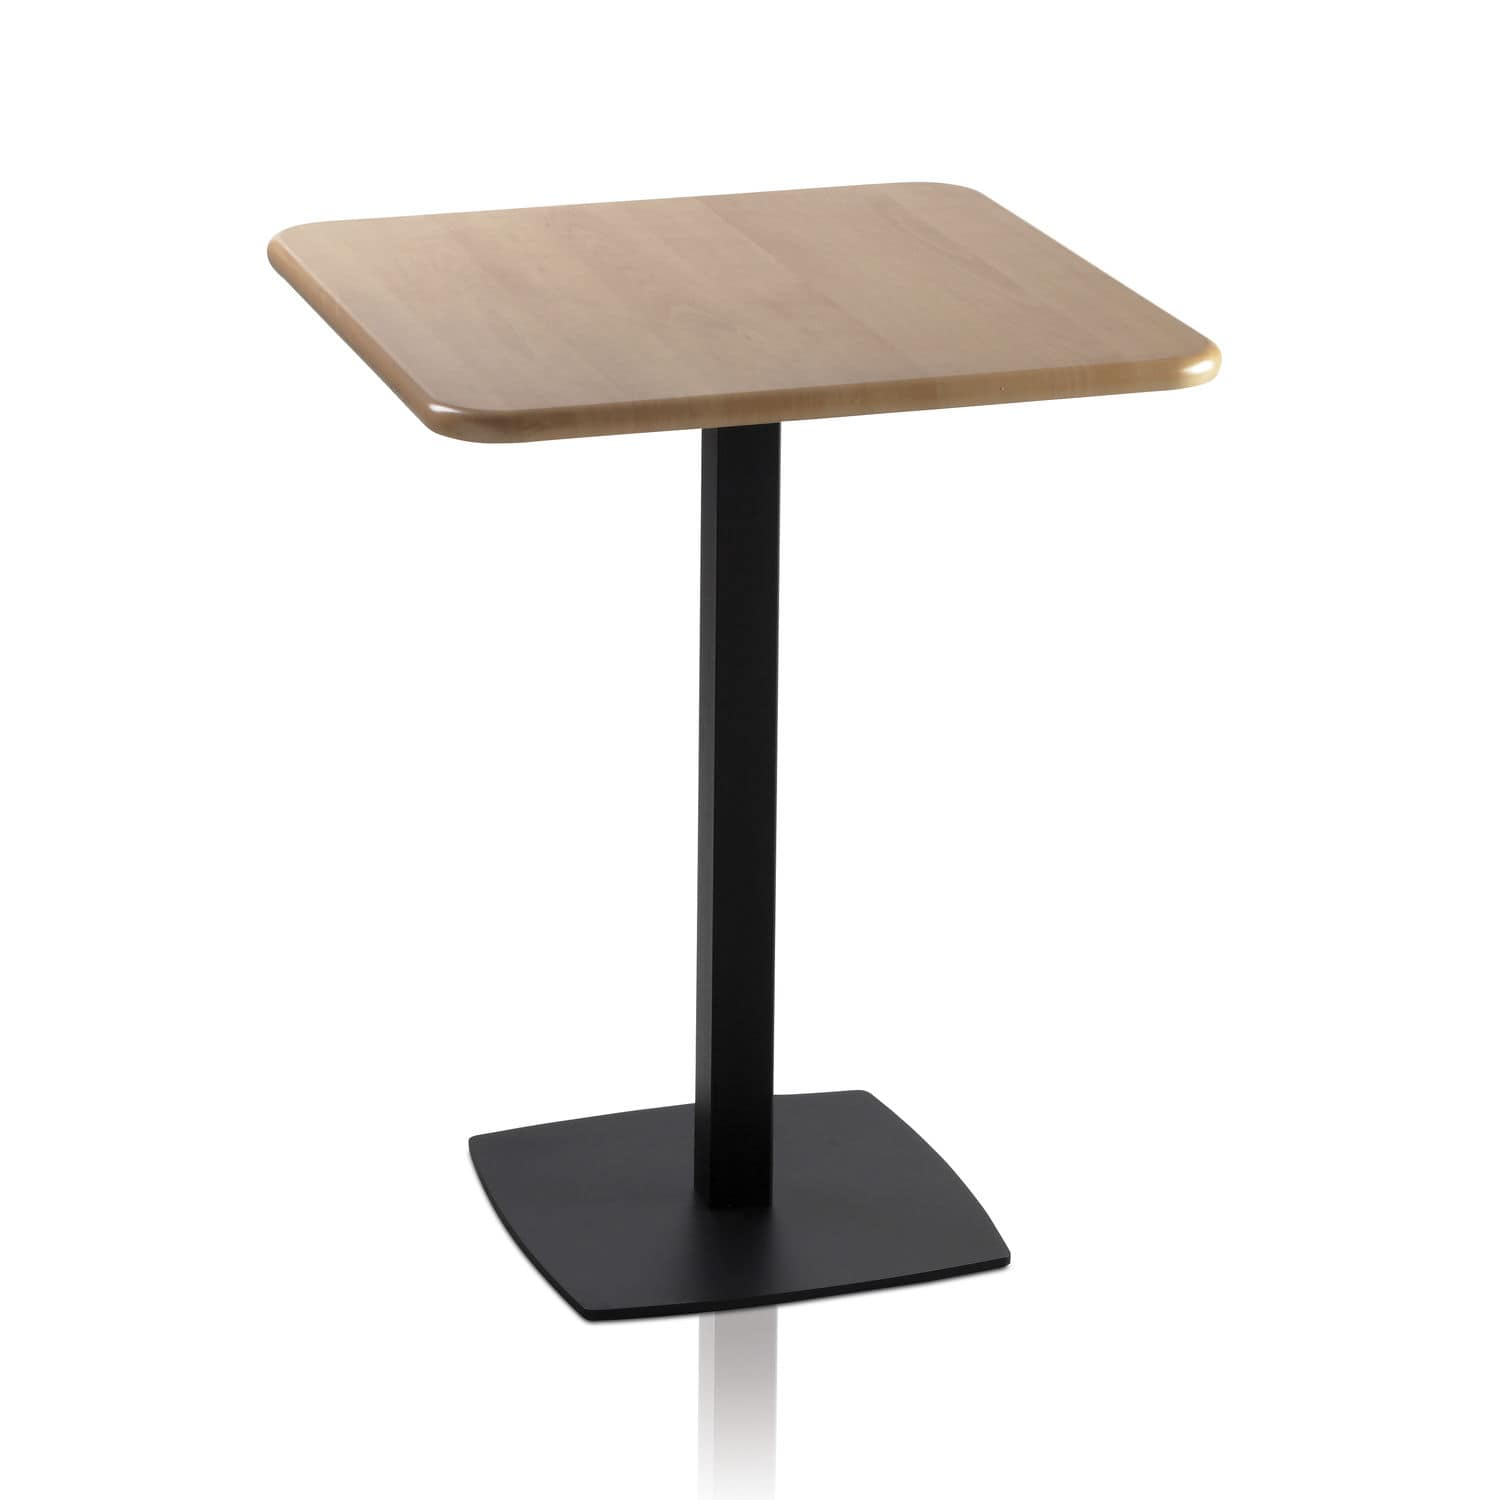 contemporary bistro table  glass  mdf  beech  totem  talin spa - contemporary bistro table  glass  mdf  beech  totem